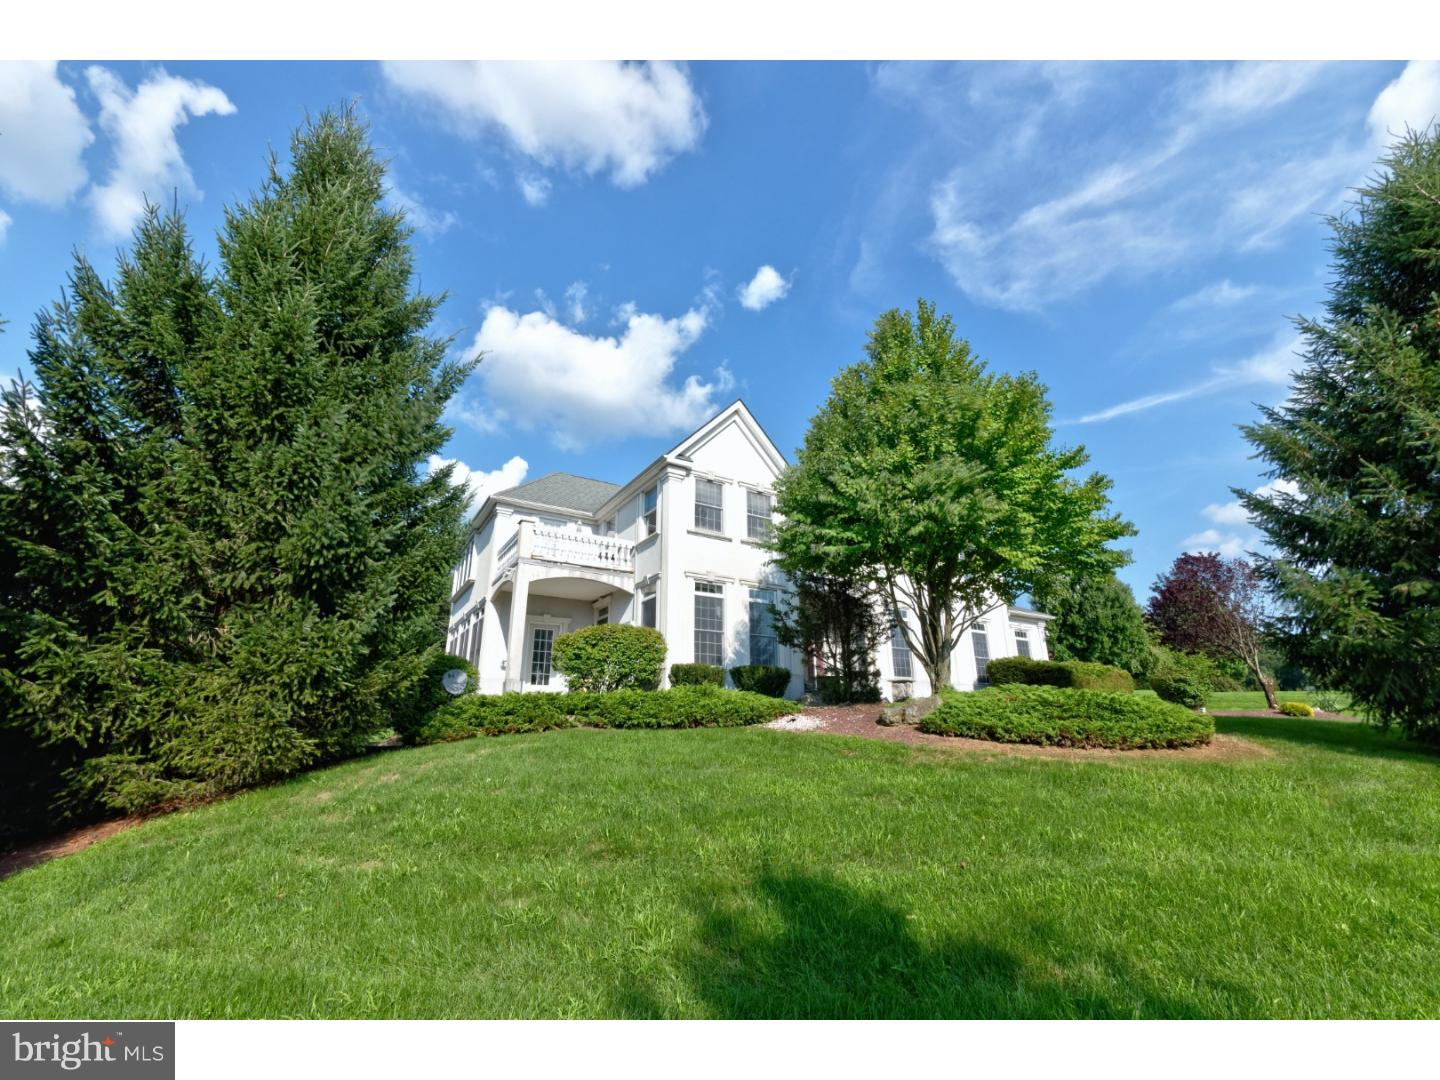 Single Family Home for Sale at Easton, Pennsylvania 18042 United States